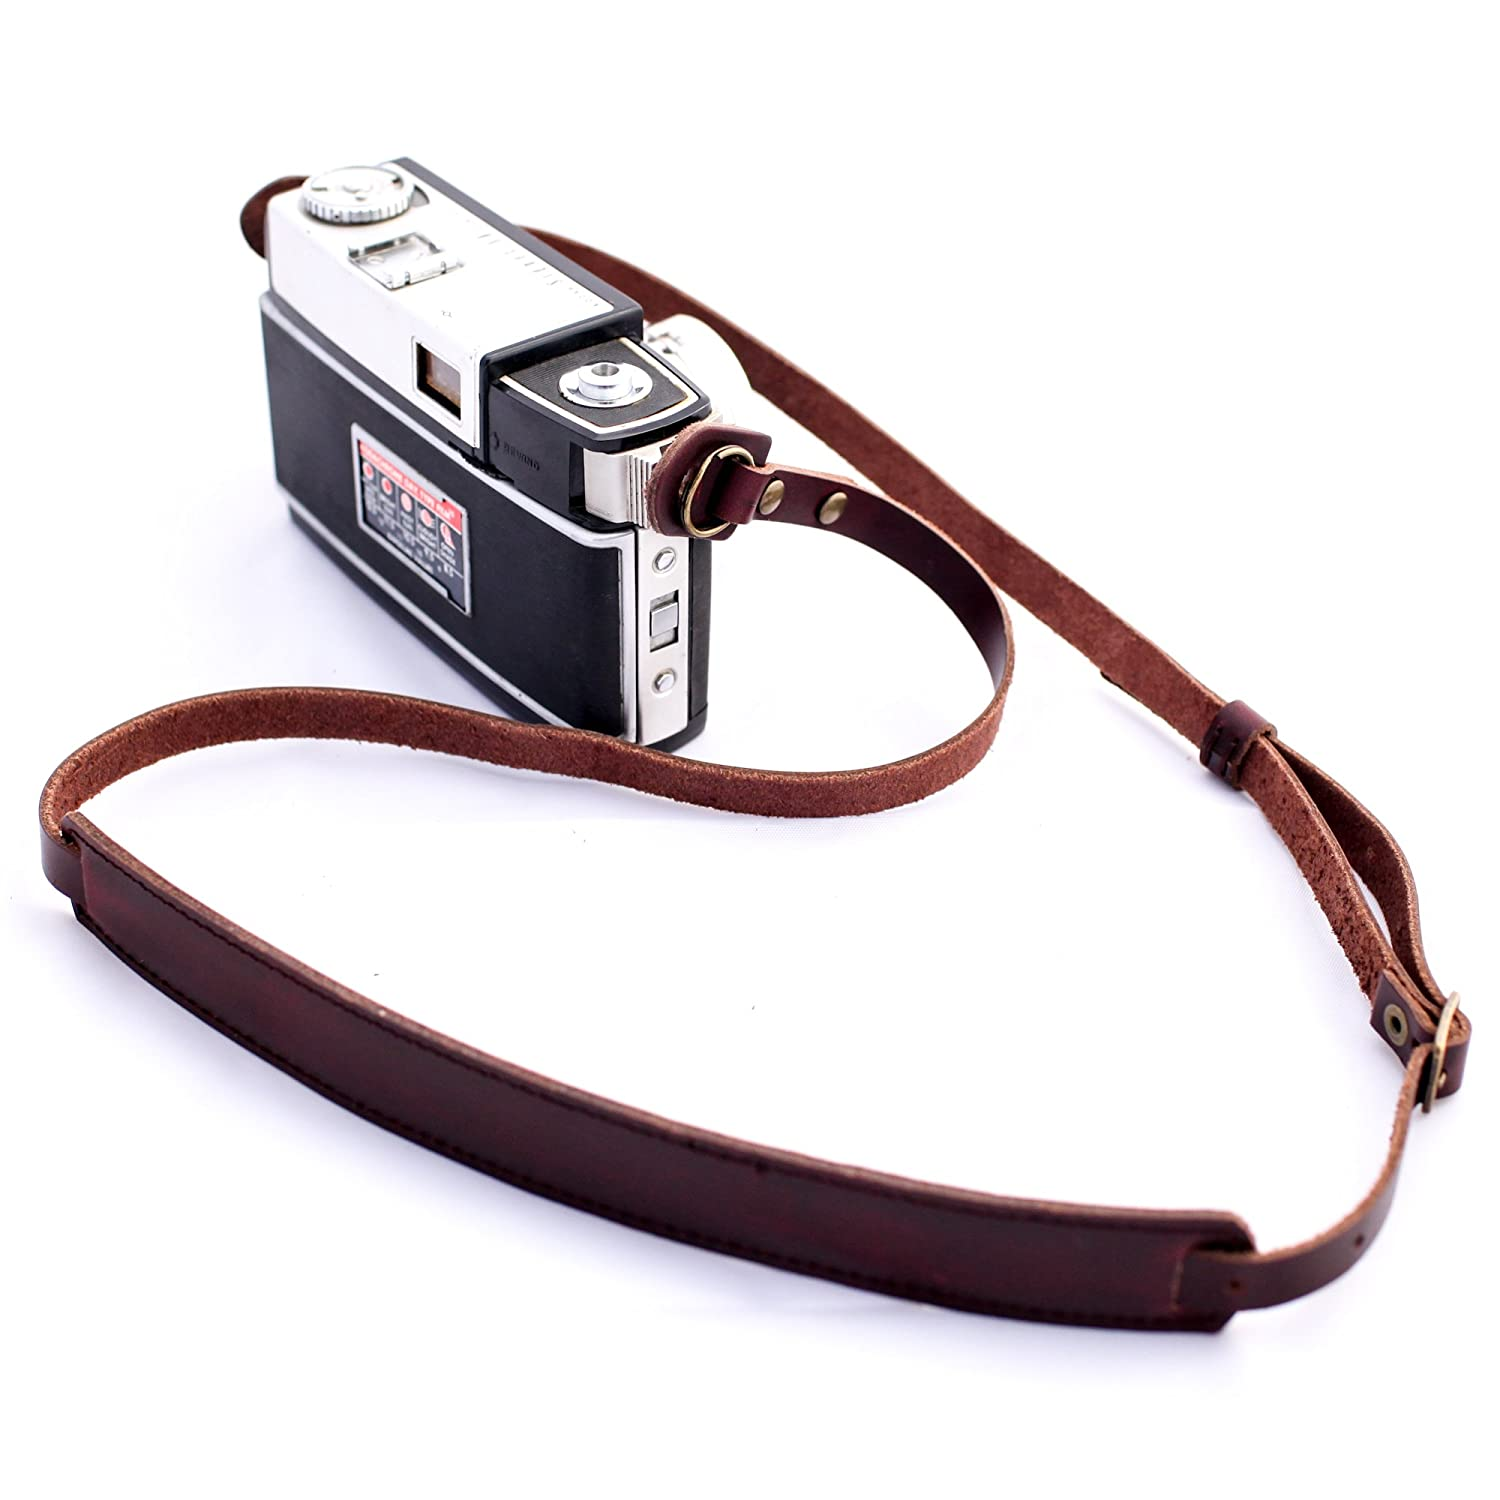 b.still Genuine Leather Camera Shoulder Neck Strap for SLR Canon Sony Leica Nikon Pentax Panasonic Olympus Fuji